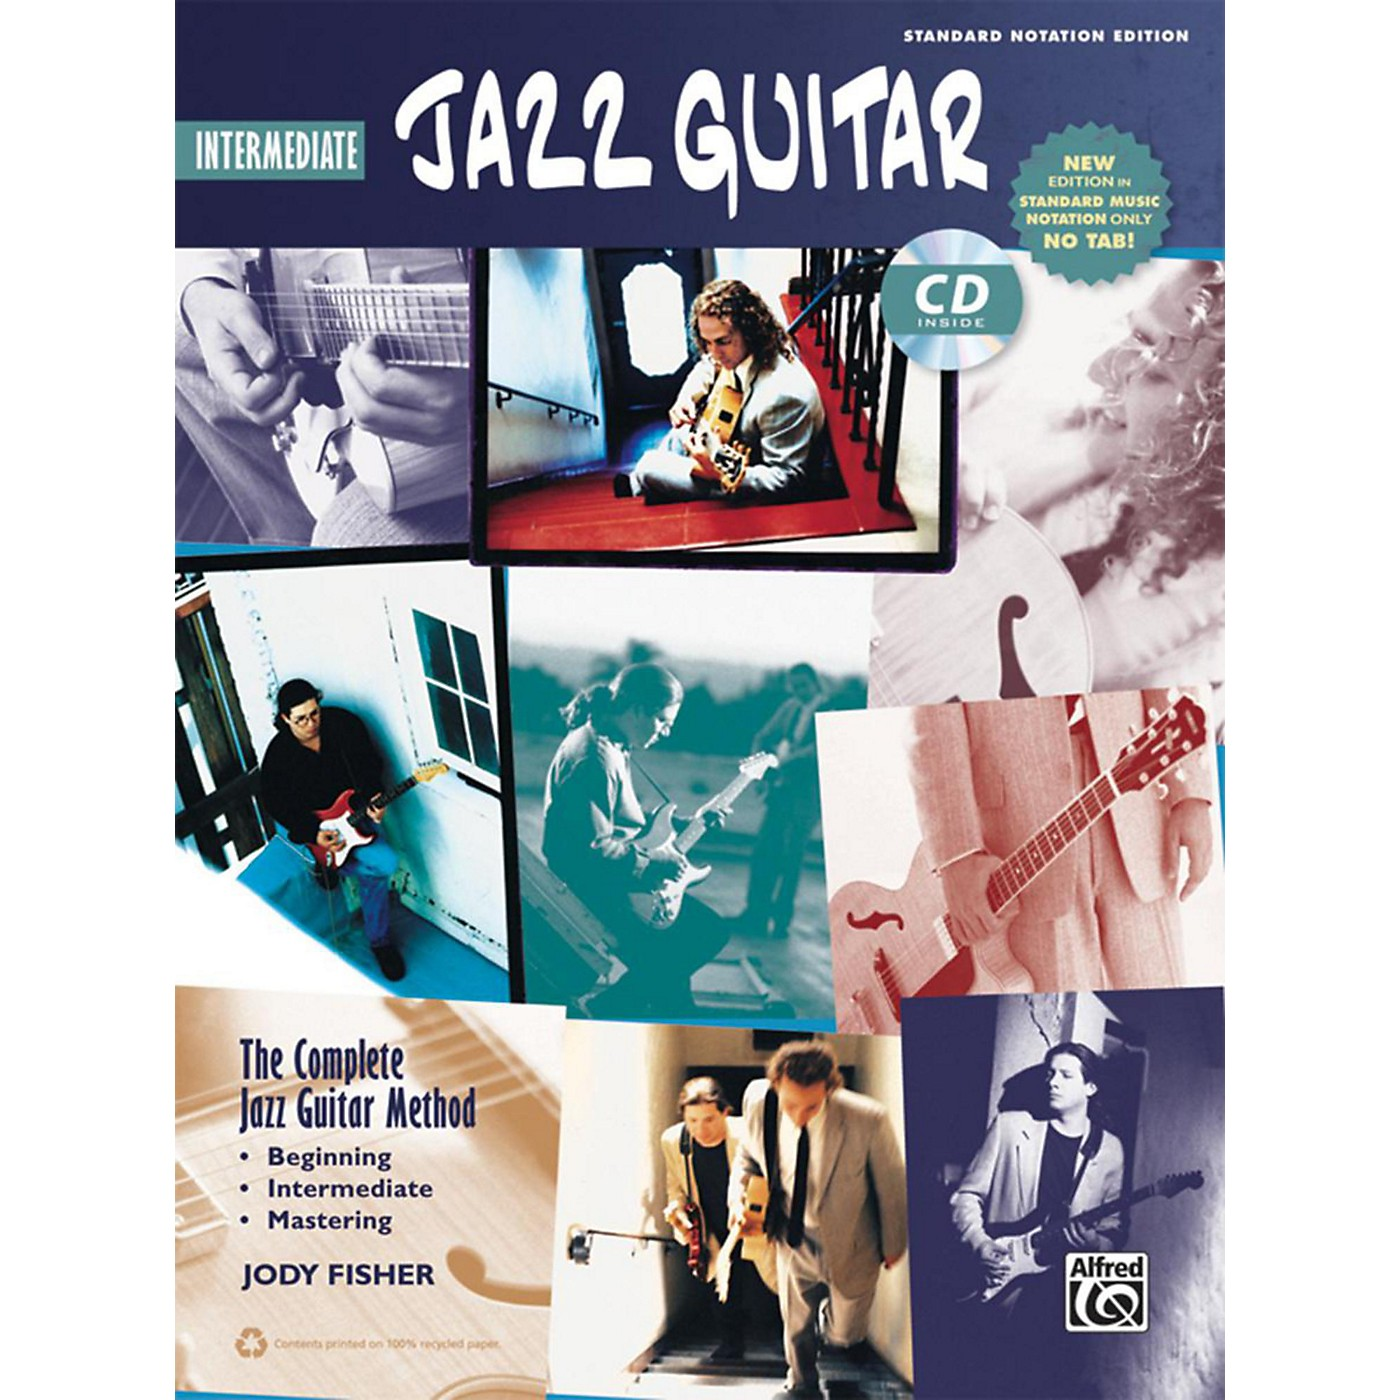 Alfred The Complete Jazz Guitar Method: Intermediate Jazz Guitar Book & CD (Standard Notation Only) thumbnail